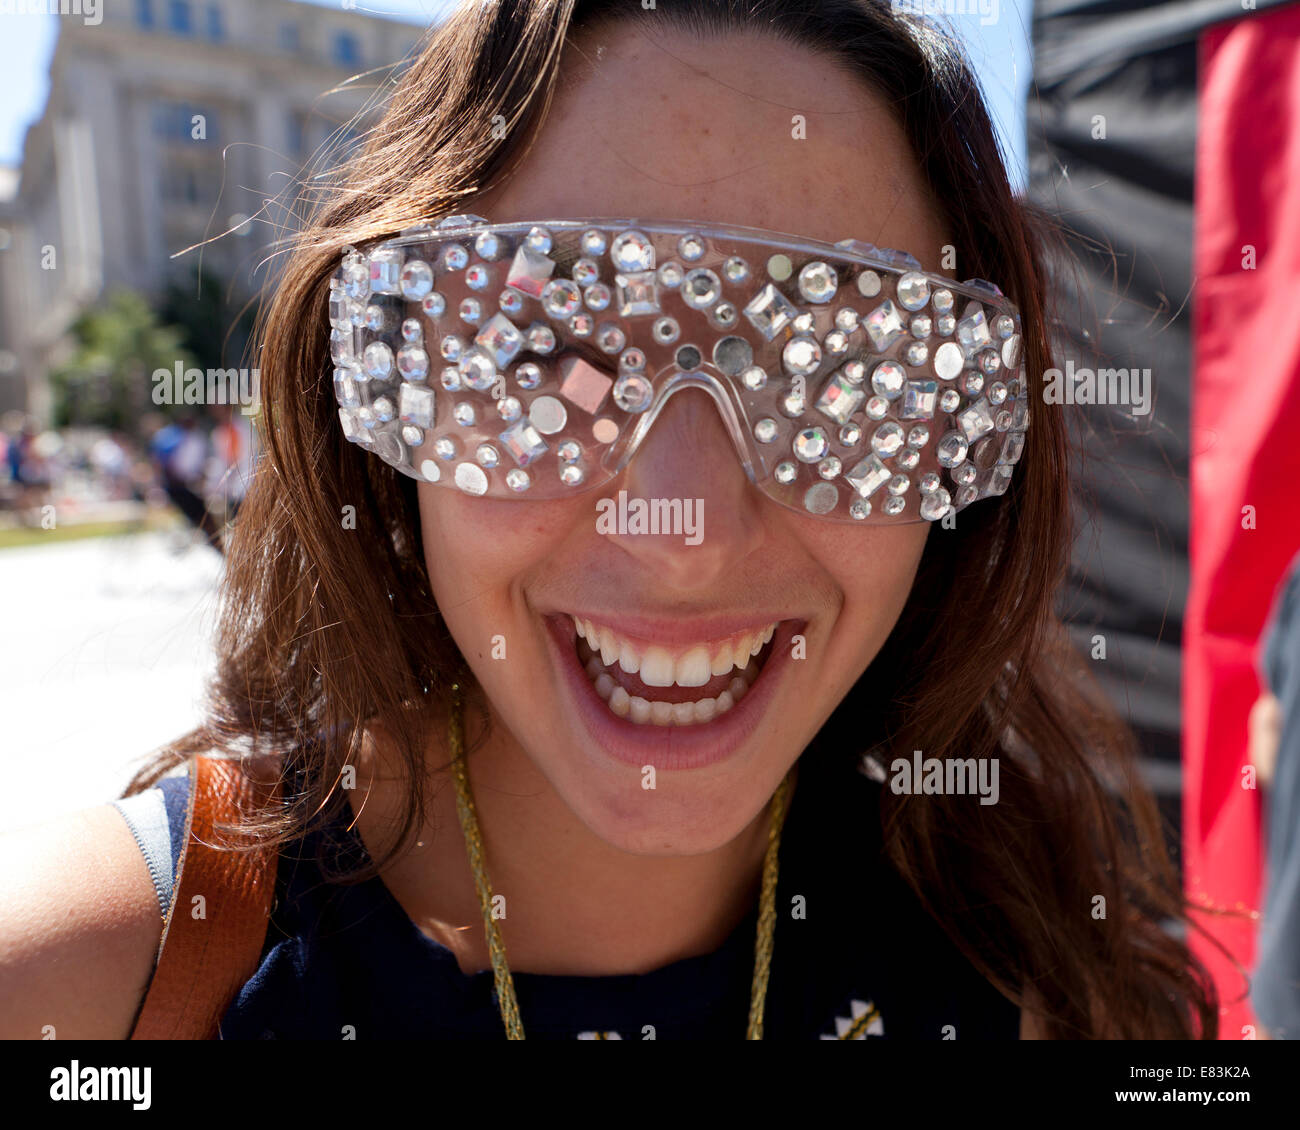 Young woman wearing funny oversize novelty sunglasses - USA - Stock Image